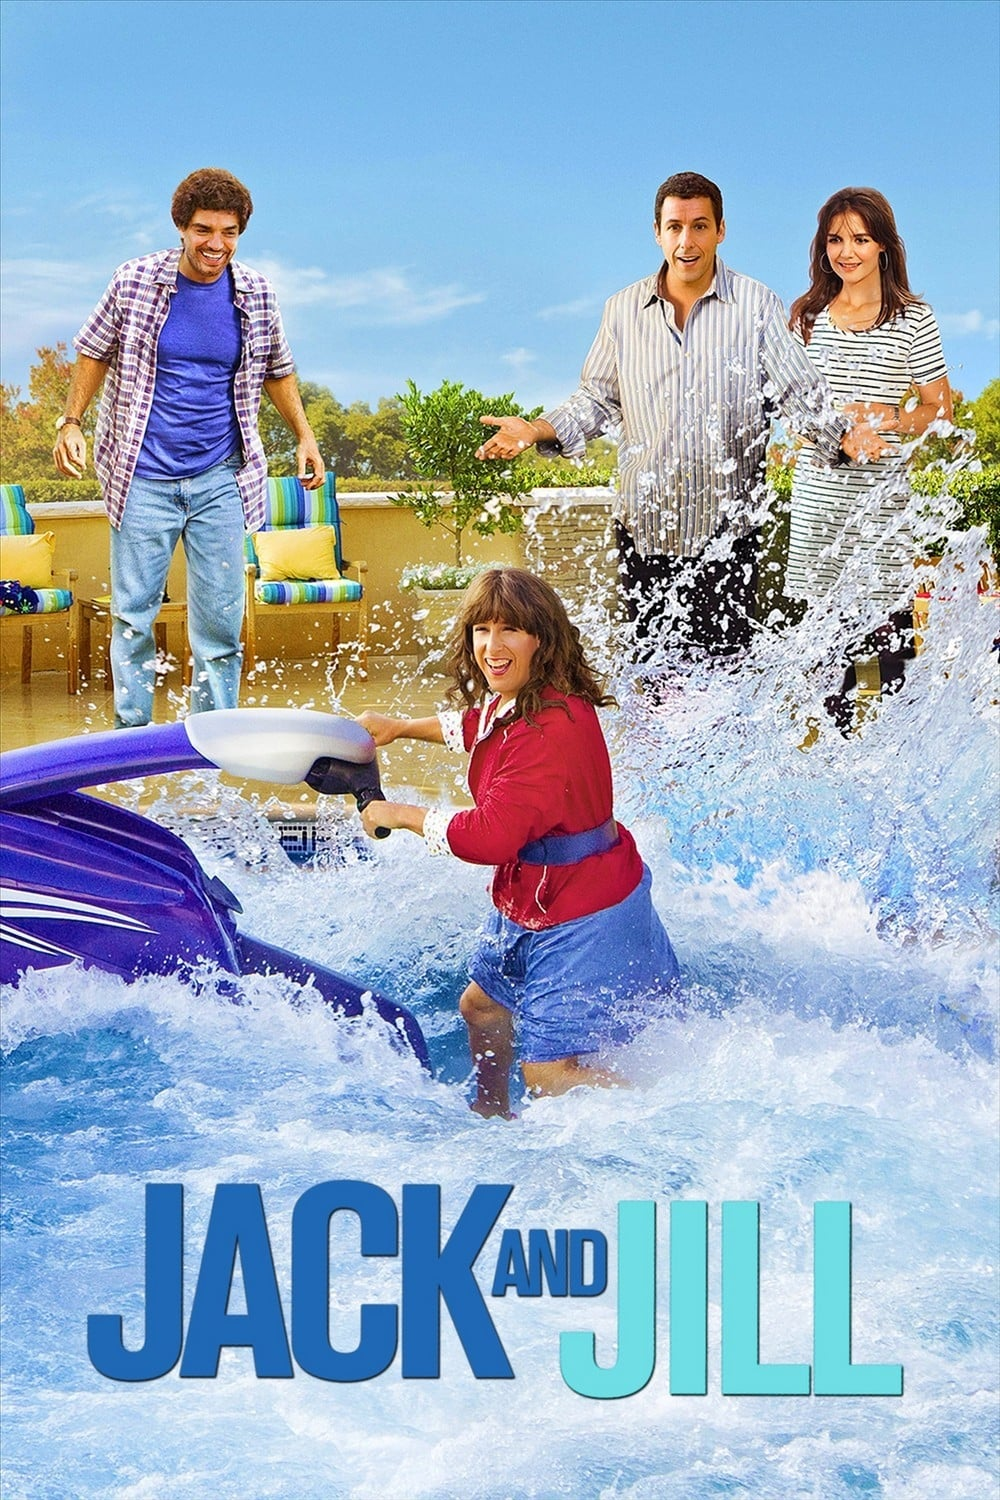 Jack and Jill 2011  Posters  The Movie Database TMDb